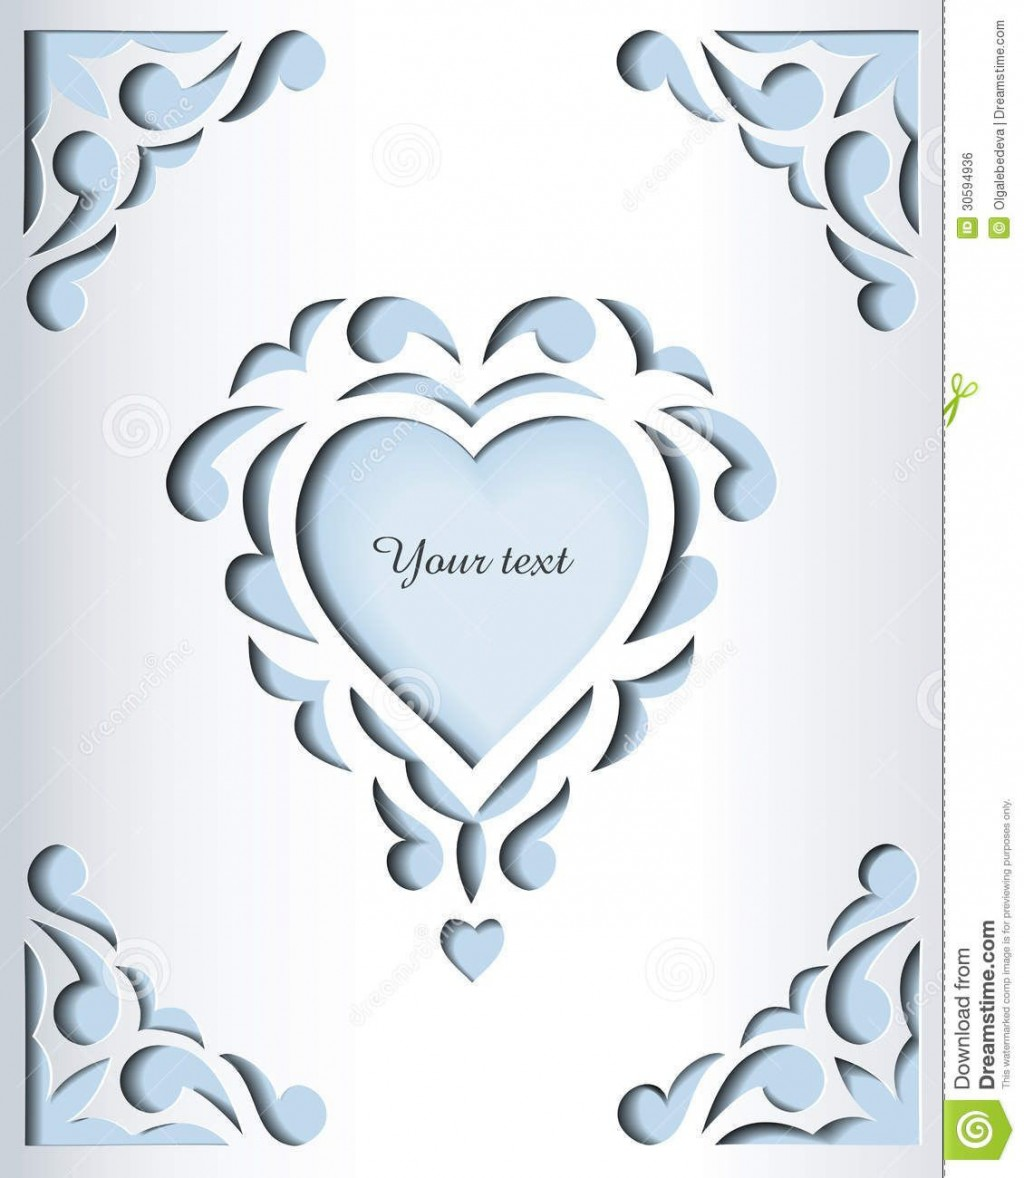 008 Unforgettable Paper Cut Out Template Sample  Templates Flower Doll FreeLarge